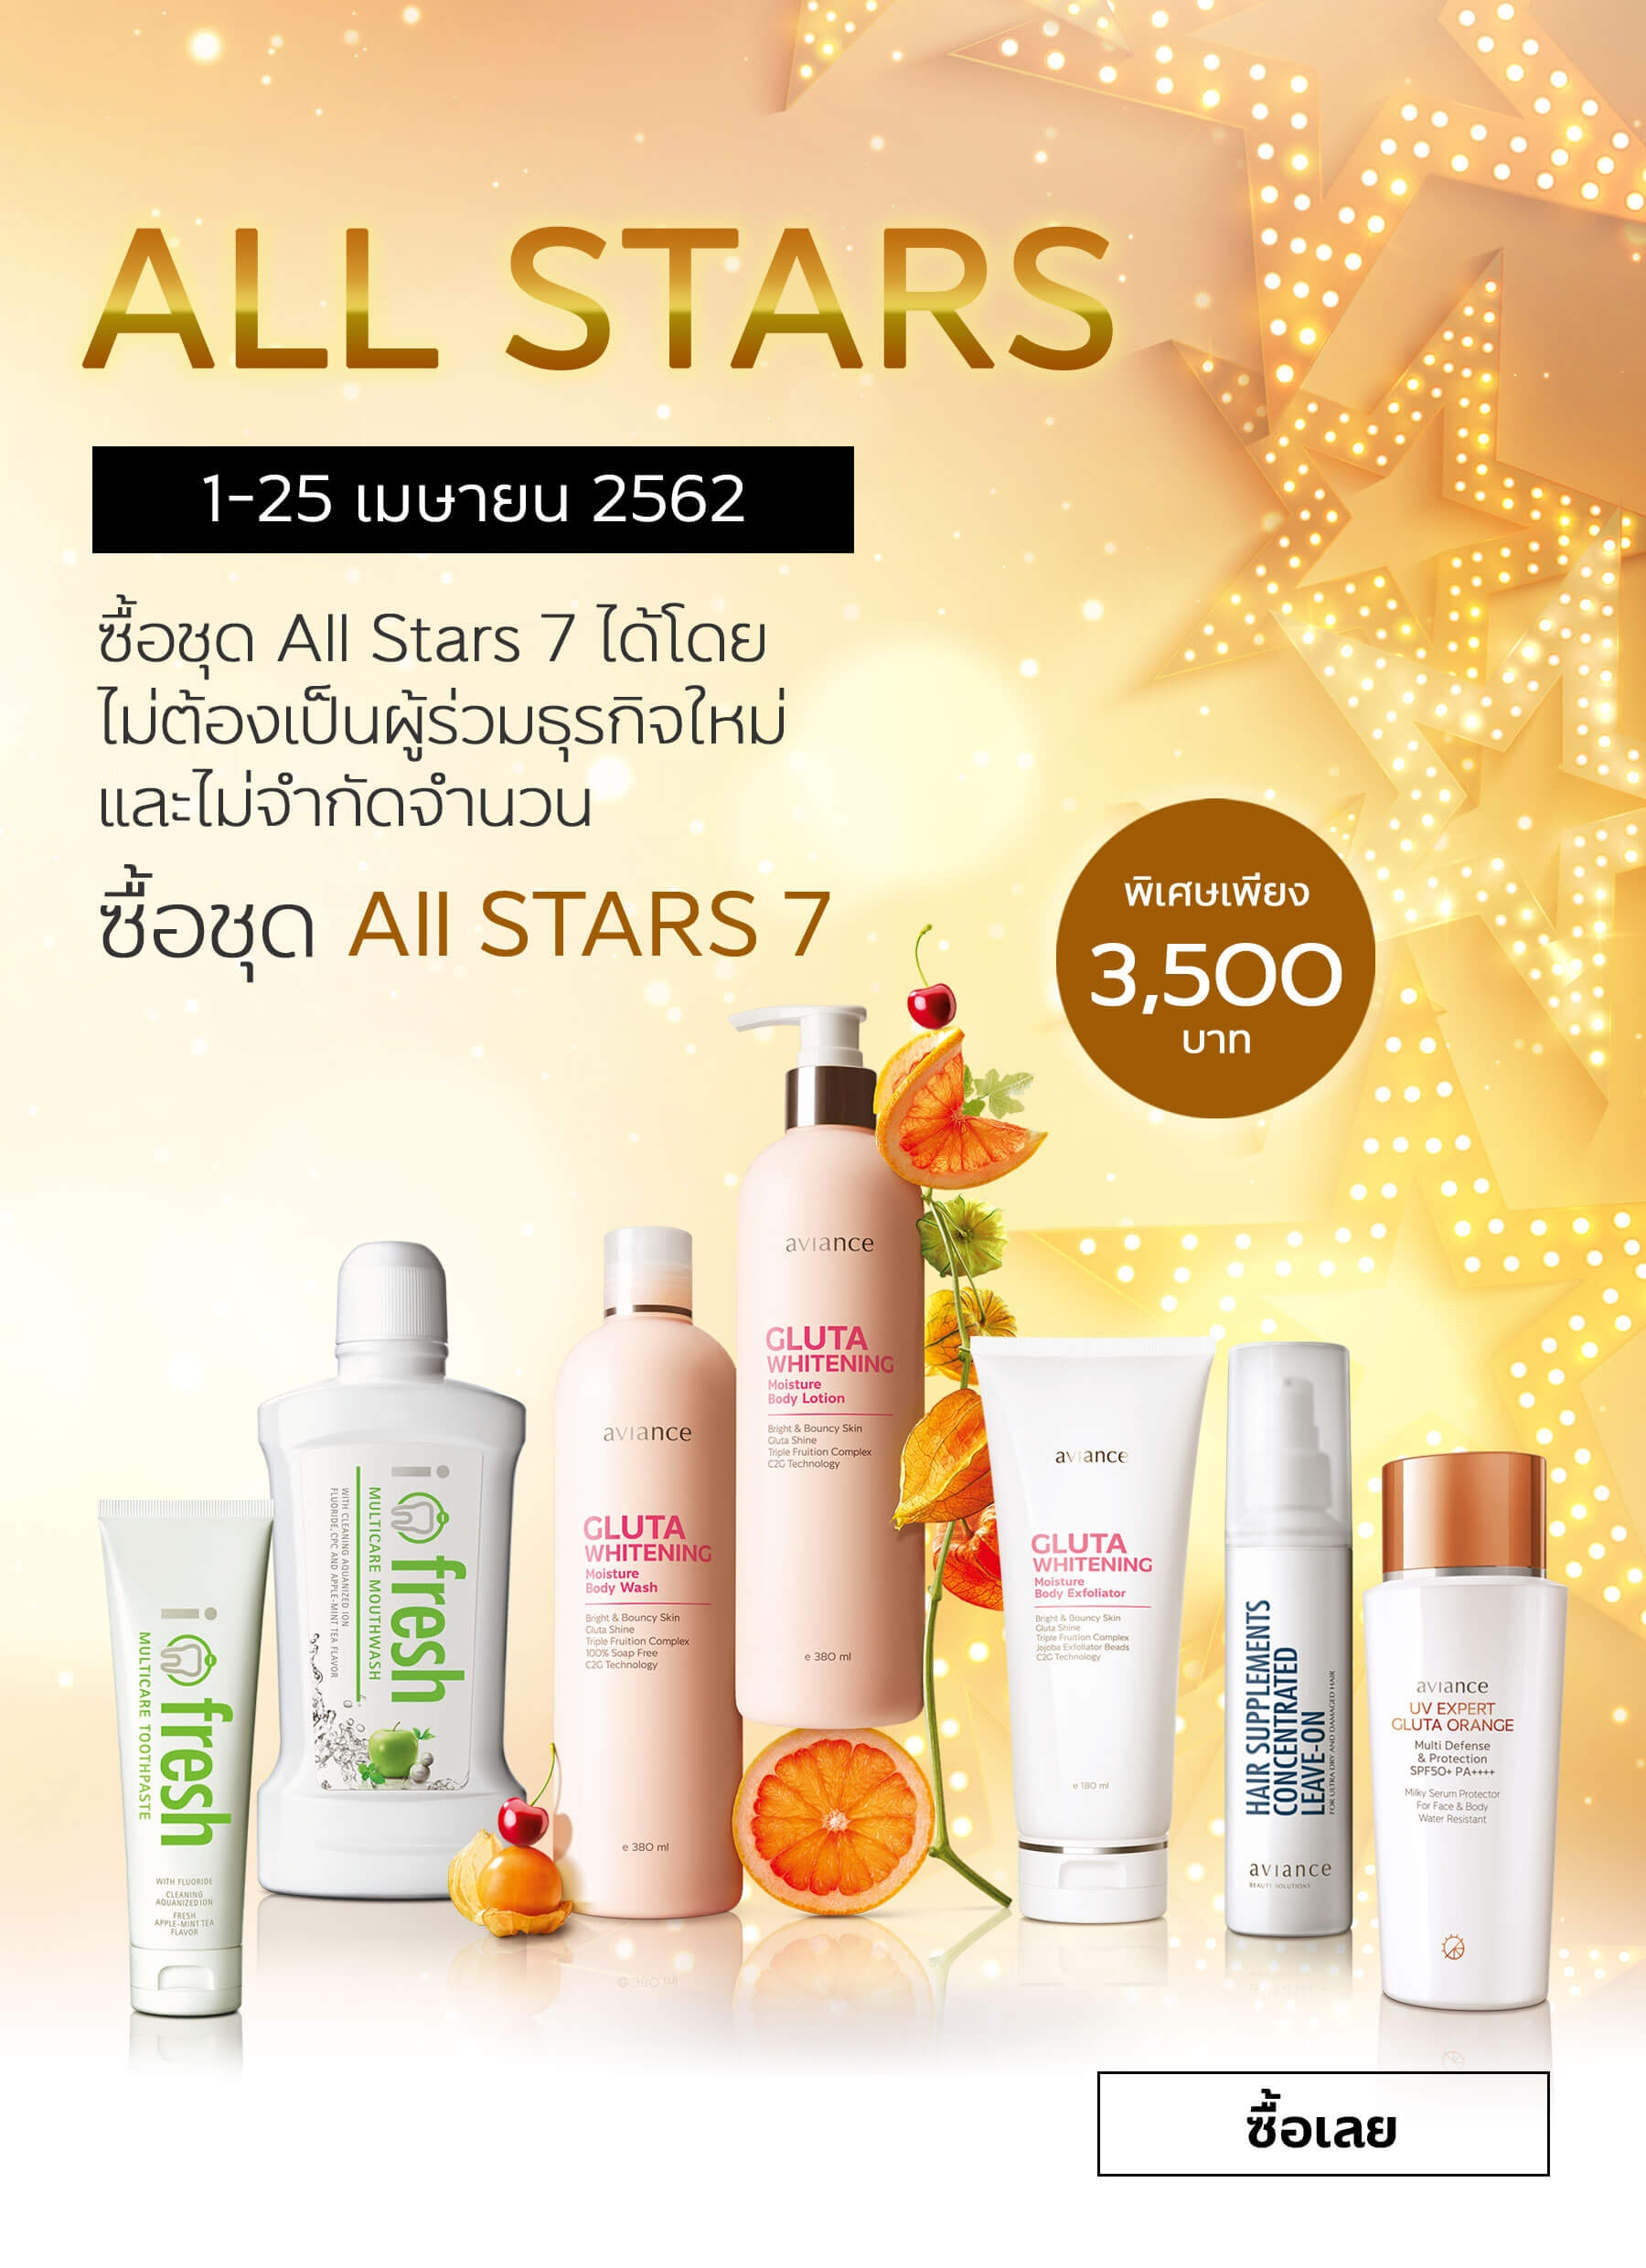 aviance All Star 7th Set for all members